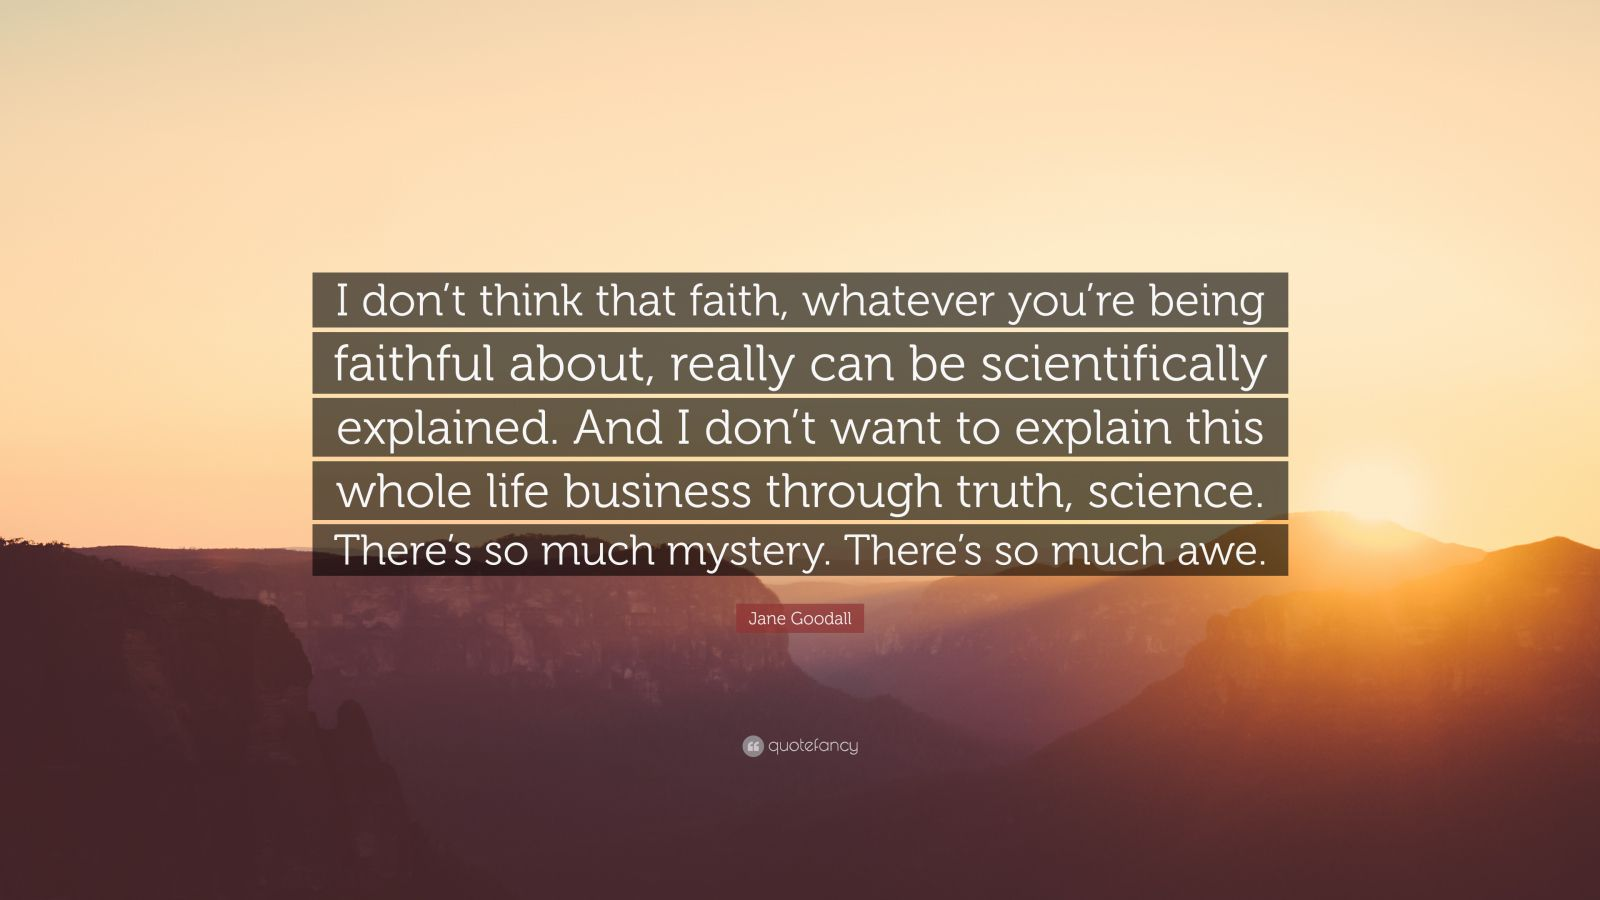 """Jane Goodall Quote: """"I don't think that faith, whatever you're being faithful about, really can be scientifically explained. And I don't want to explain this whole life business through truth, science. There's so much mystery. There's so much awe."""""""